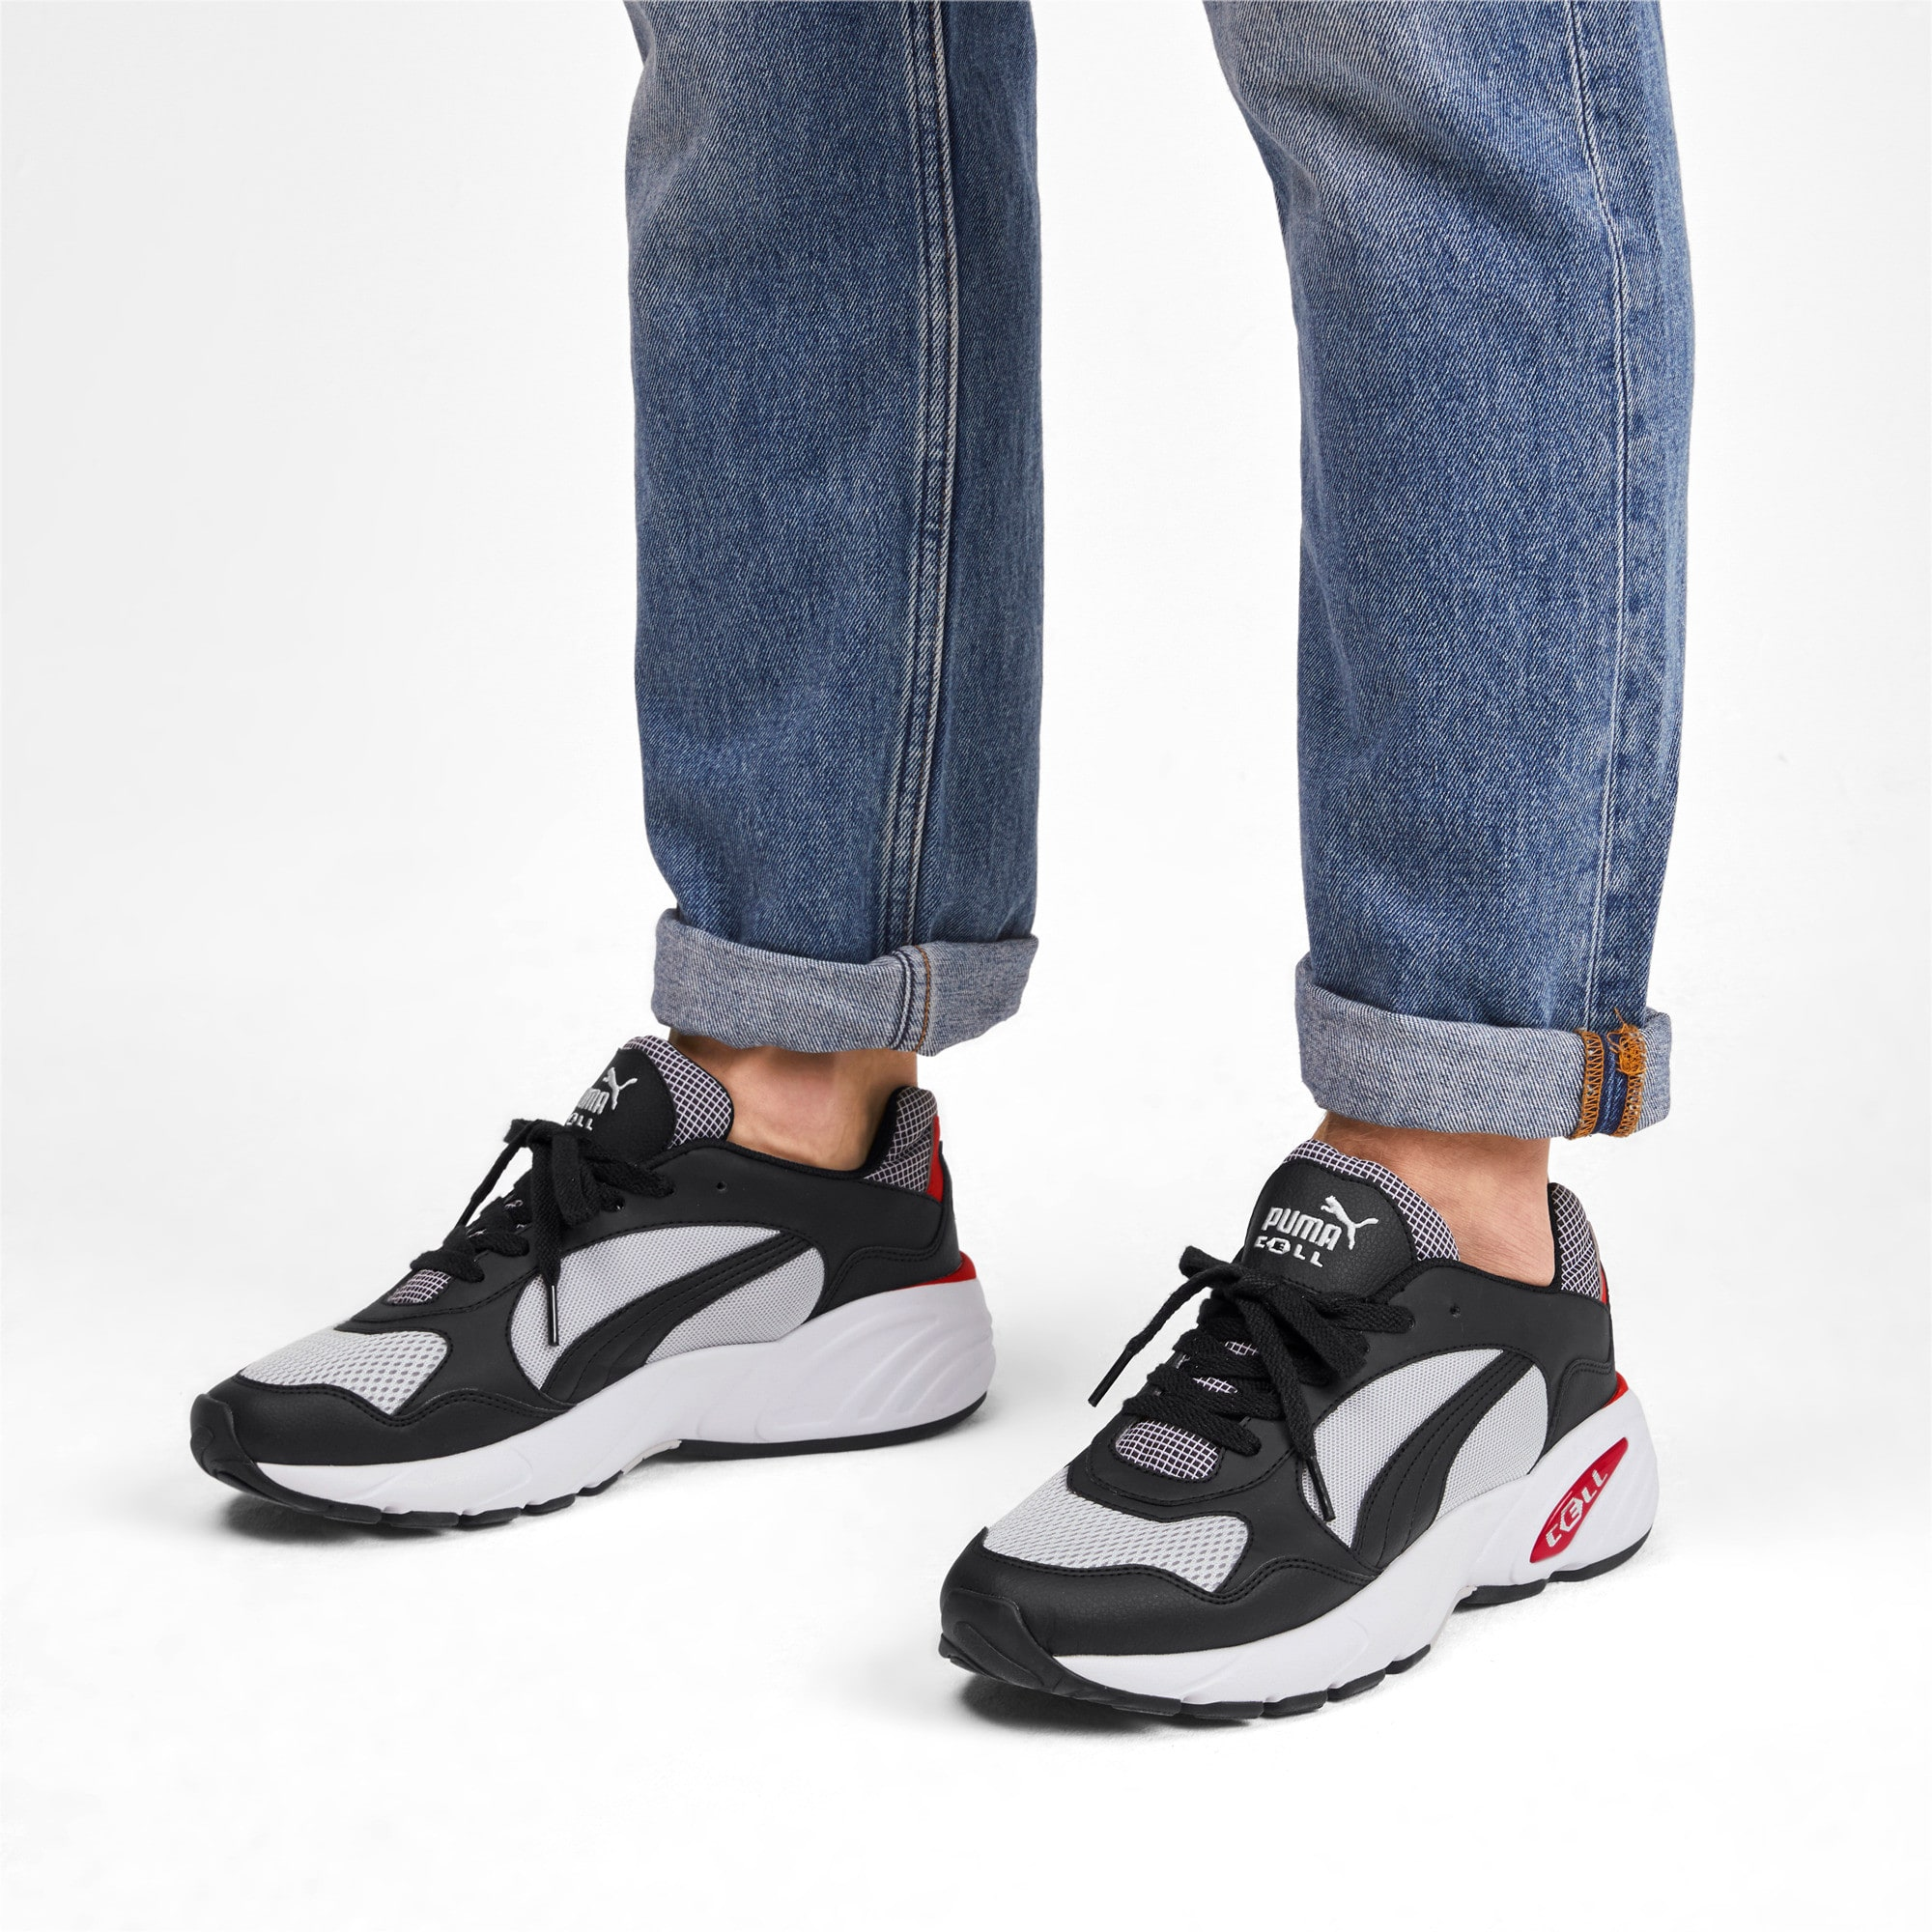 Thumbnail 2 of CELL Viper Street Racer Trainers, High Rise-Puma Black, medium-IND